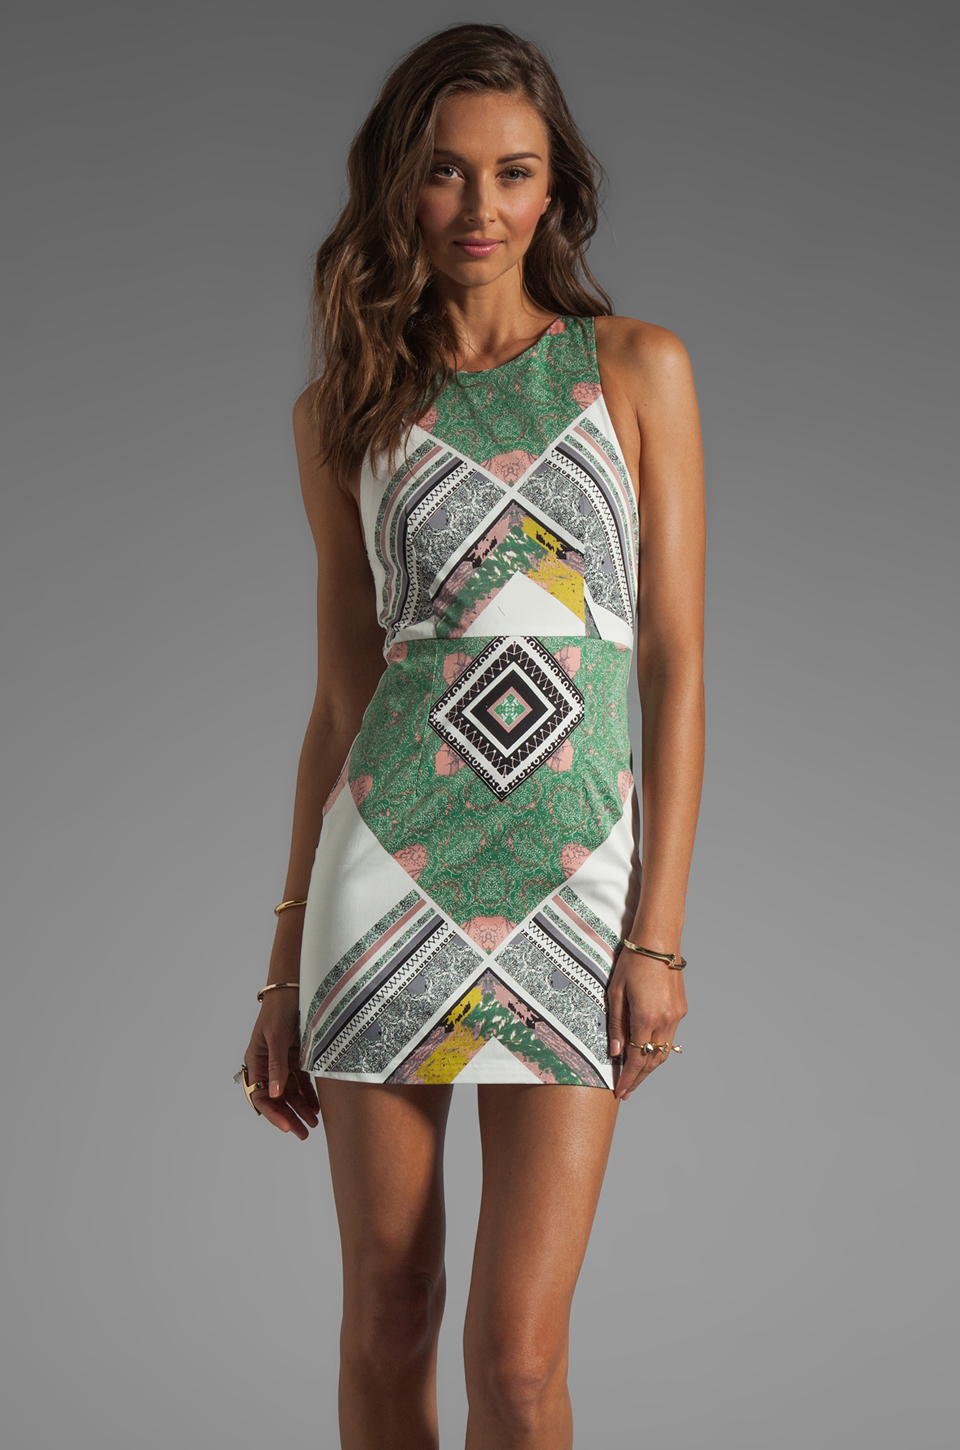 Shona Joy We Surrender Mini Dress in Multi